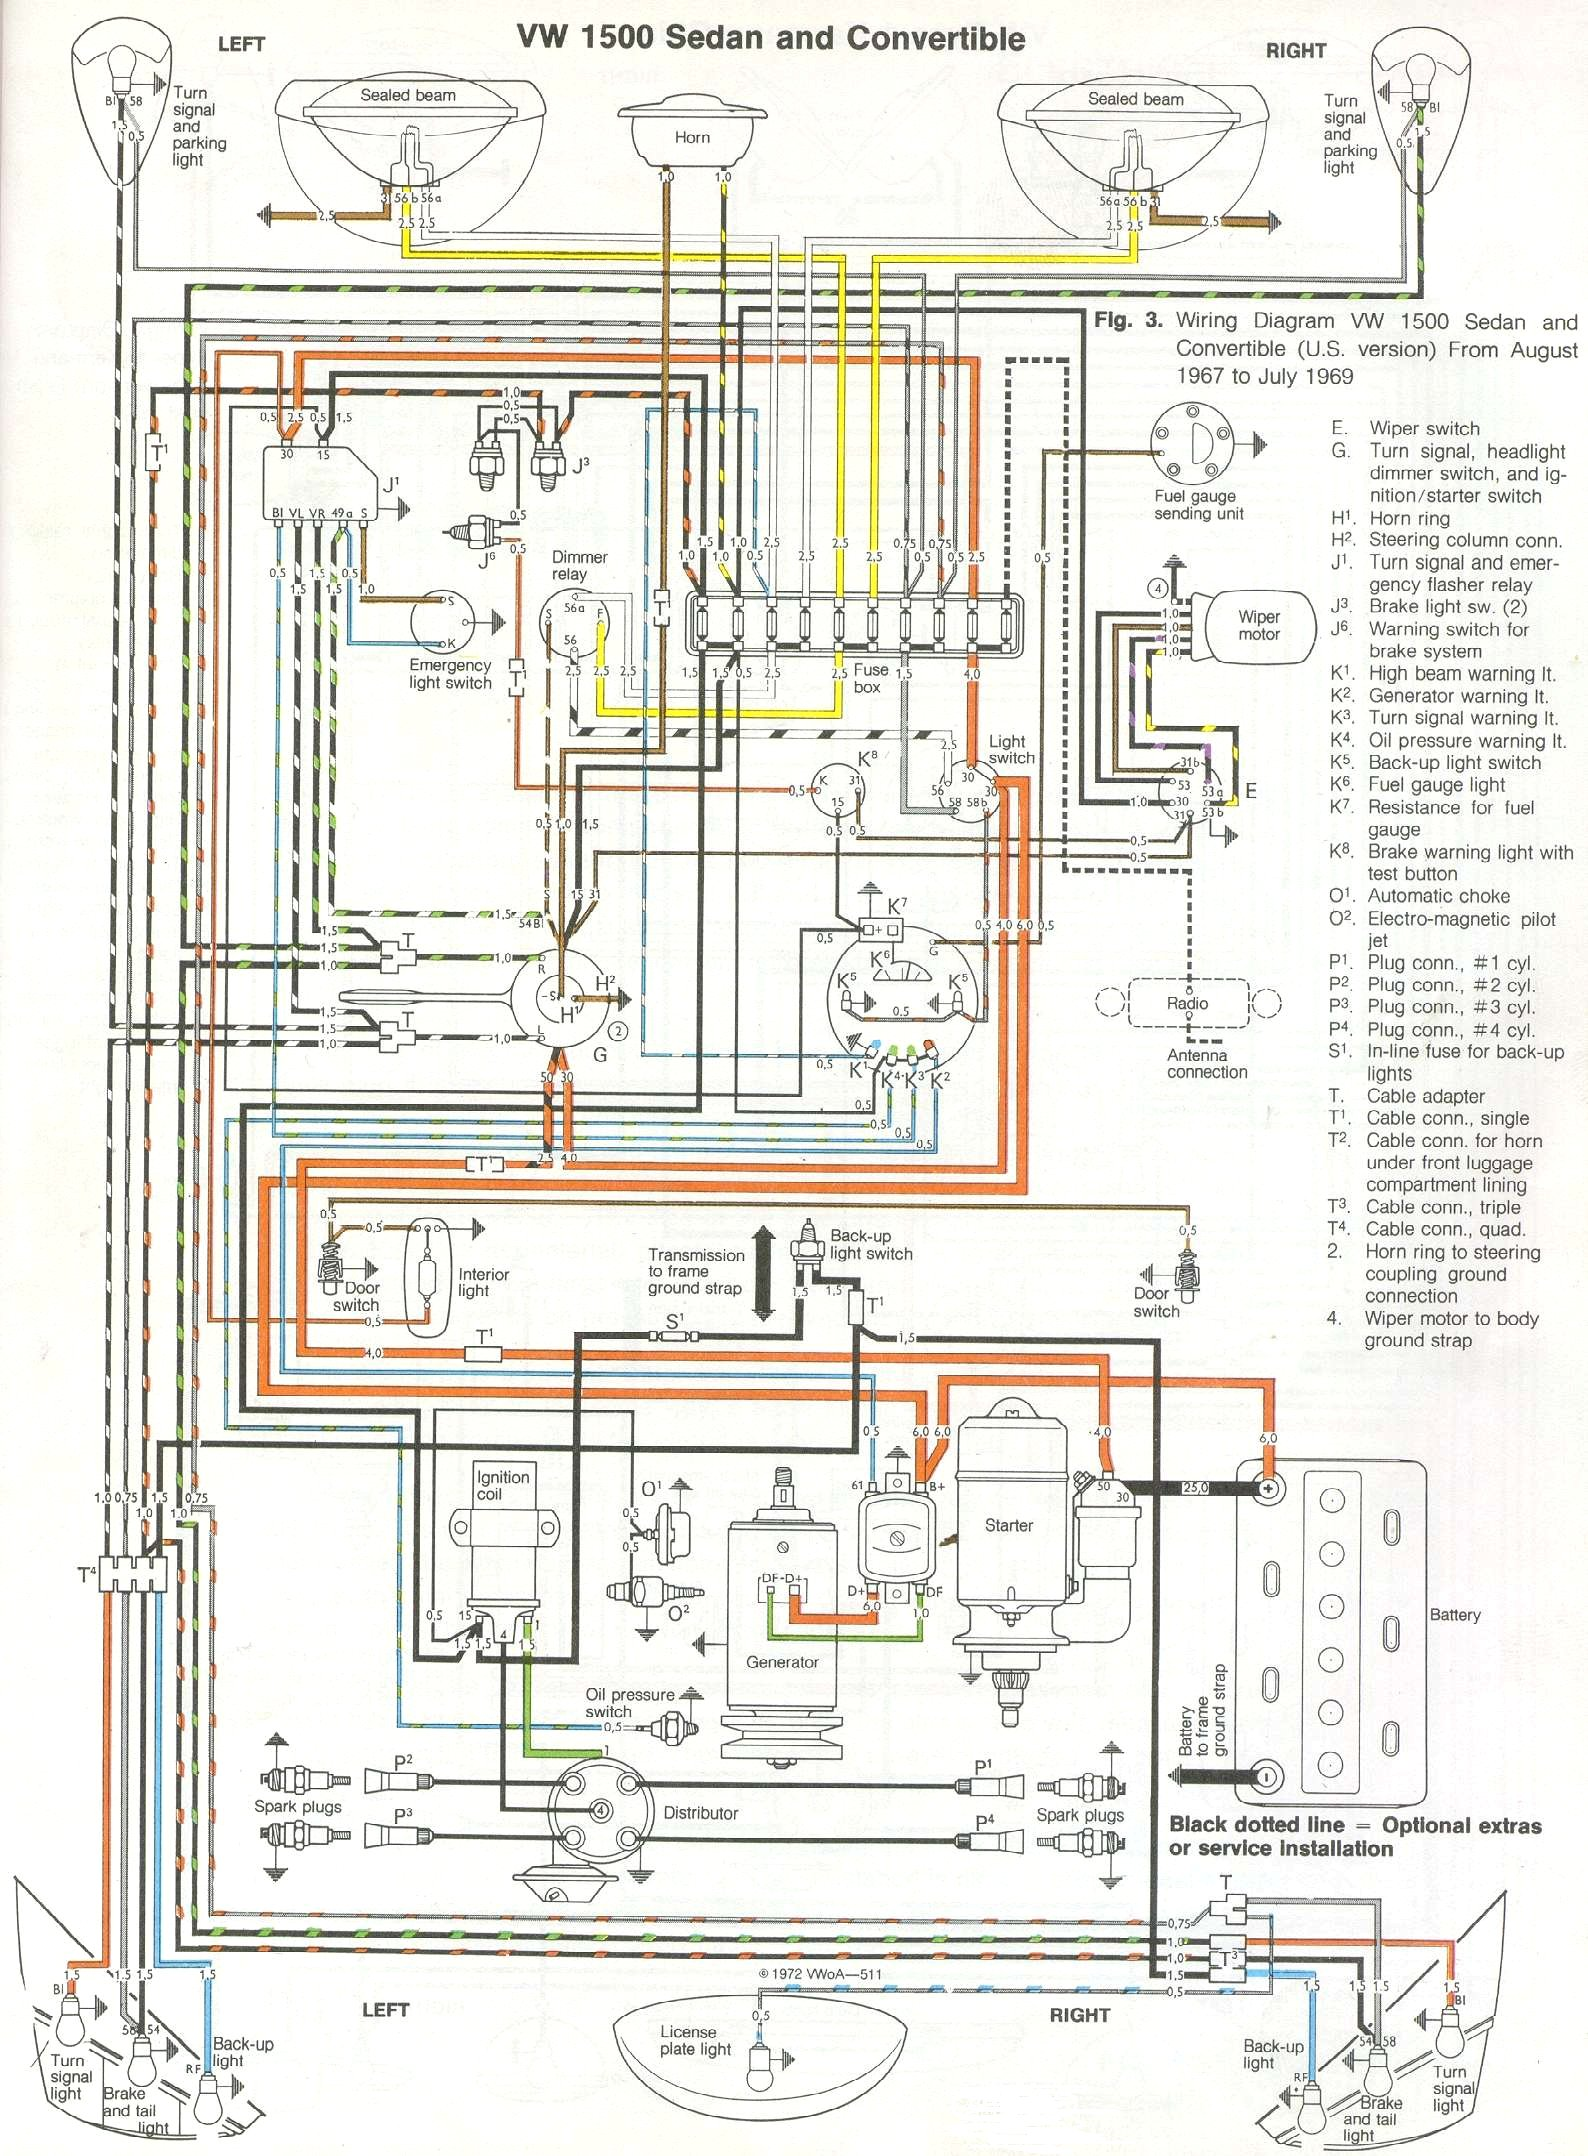 73 Cj5 Wiring Harness Library 1969 71 Beetle Diagram Thegoldenbug Com 78 Jeep